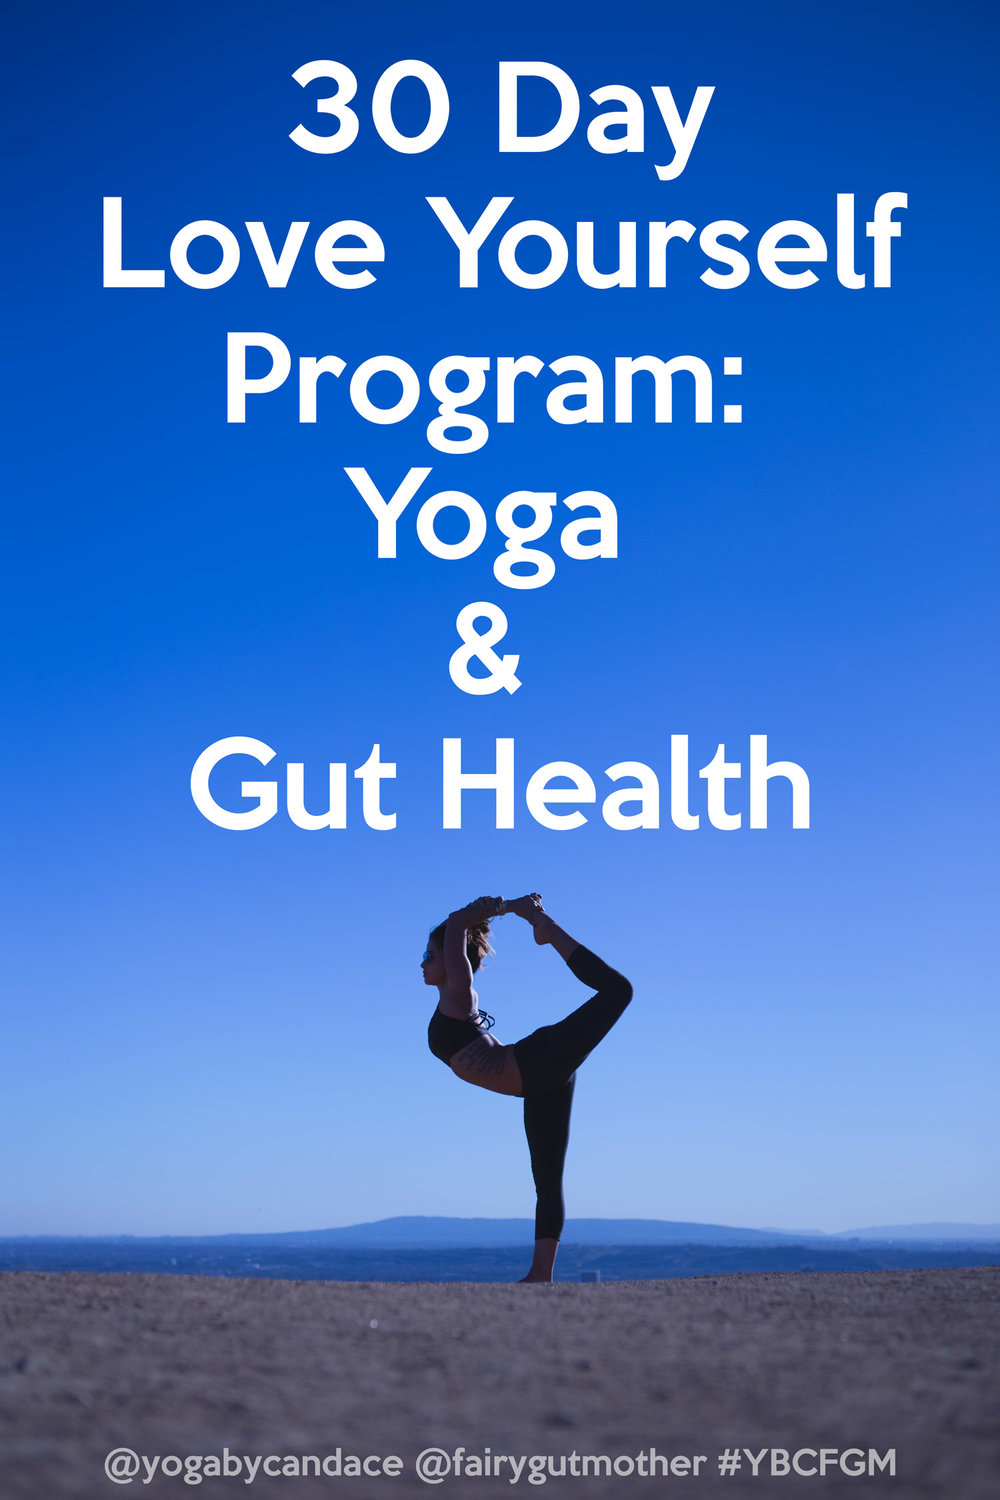 Pin the image above and join in our 30 day love yourself: yoga and gut health program at any time!